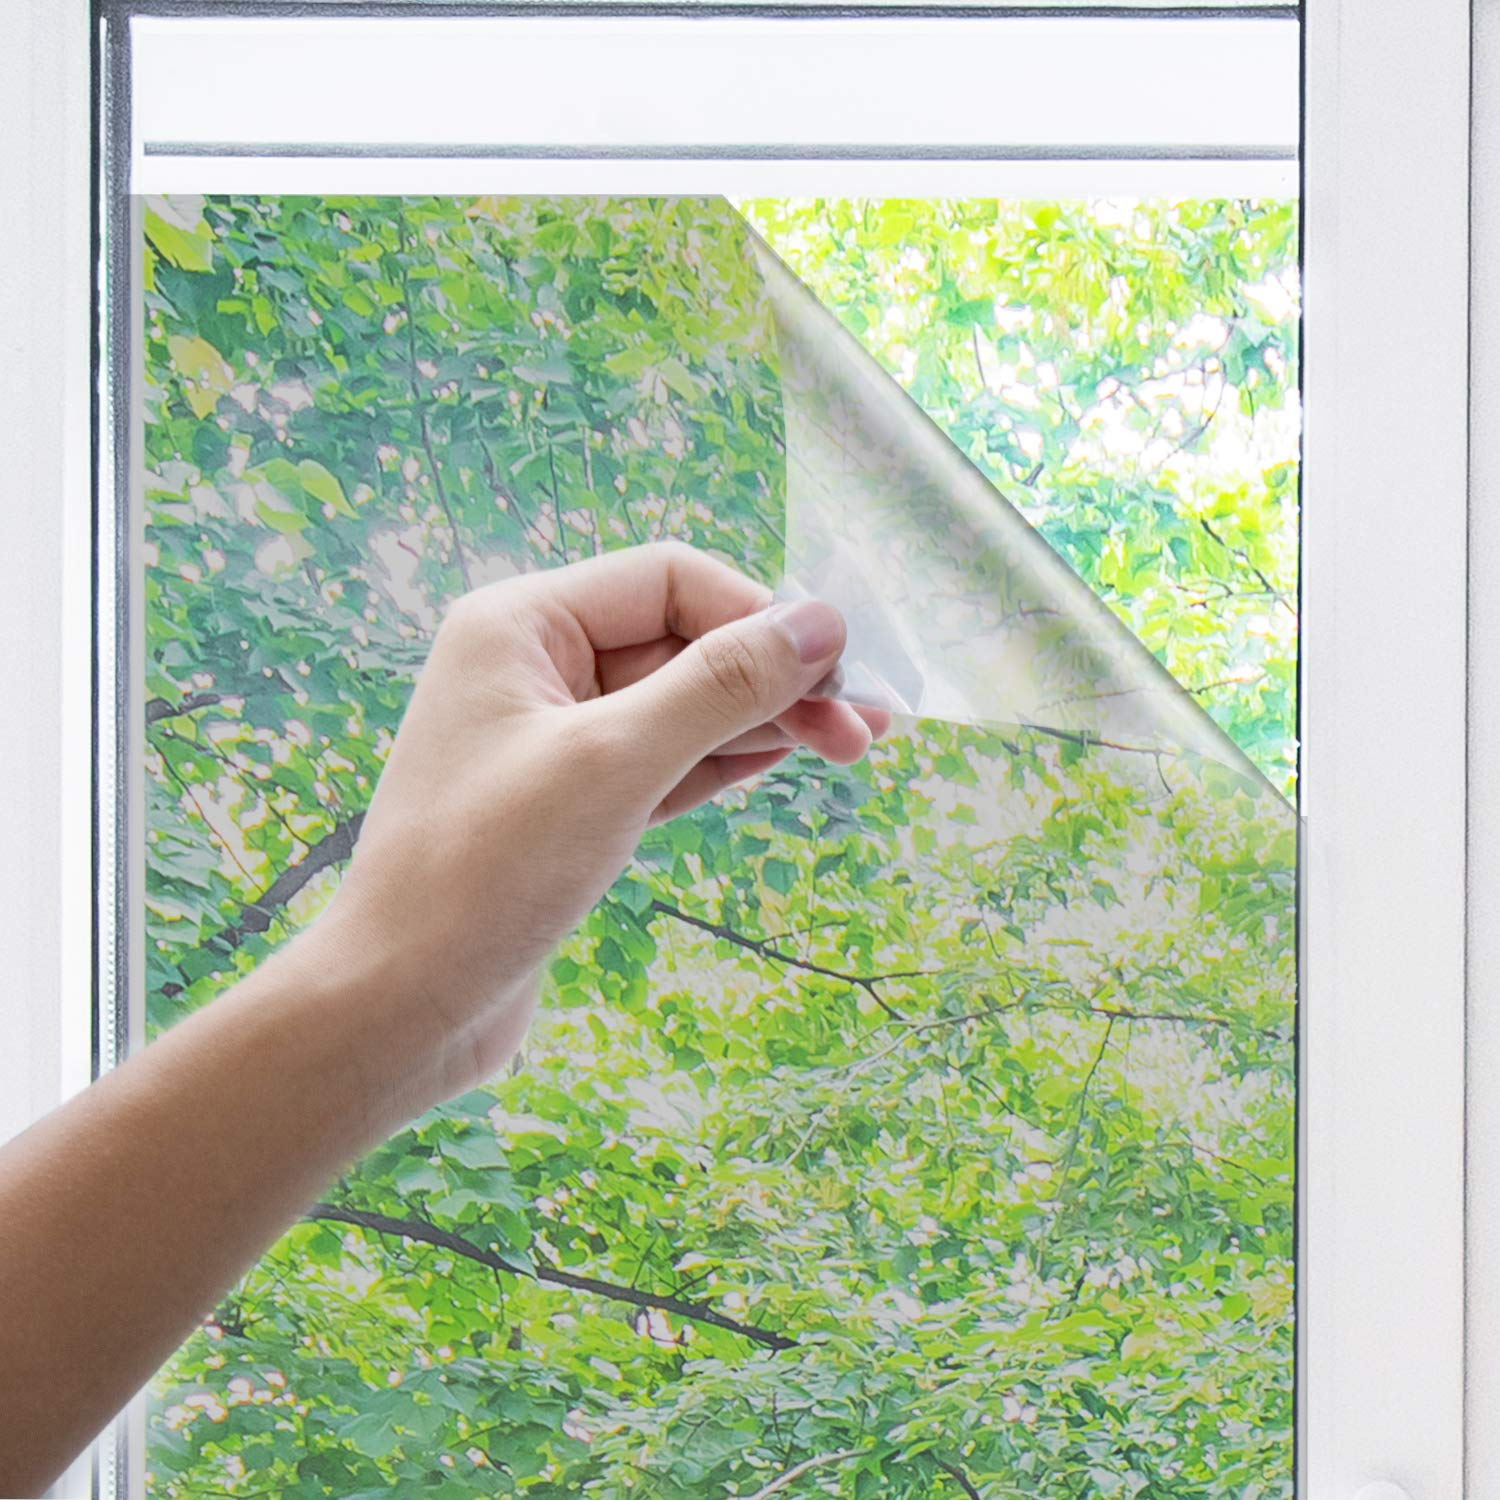 innoAura One Way Window Film- Anti UV Static Cling Window Film 100% Light Blocking for Privacy Removal Decorate Heat Control Glass Tint Home Office Windows.(23.6'' x 78.7'', Silver) by innoAura (Image #1)